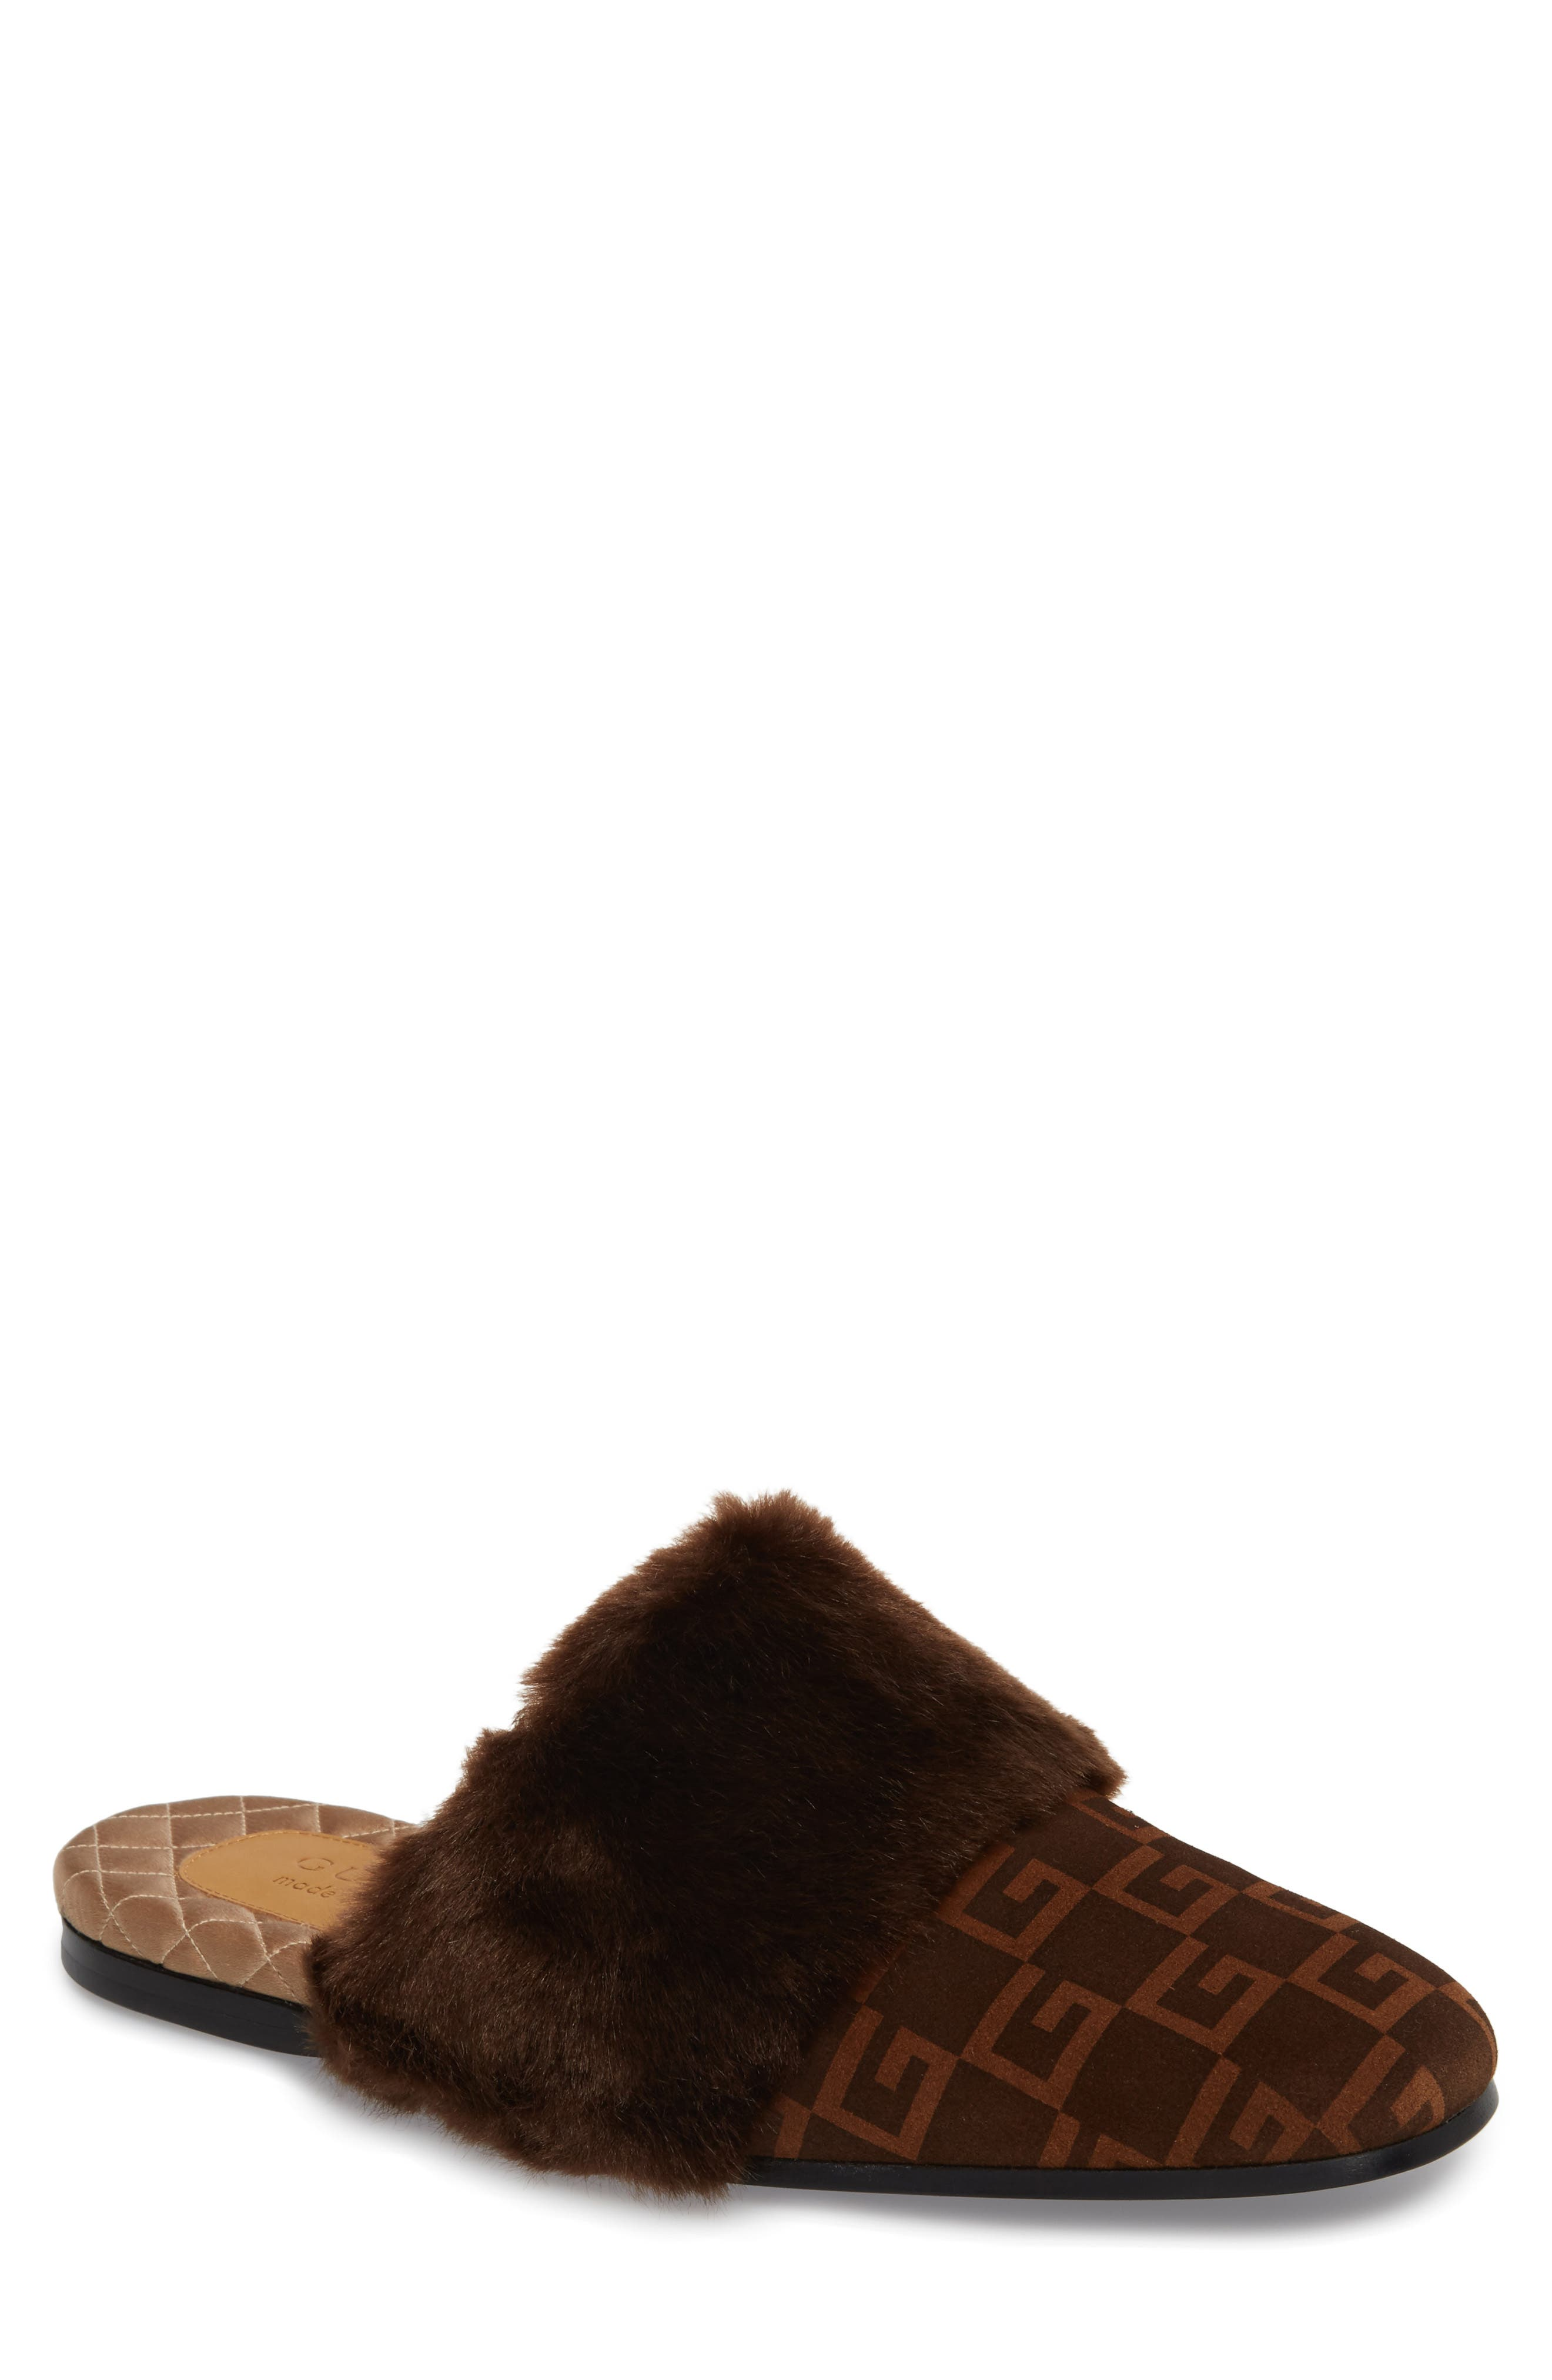 Lawrence Square-G Faux Fur Slipper,                             Main thumbnail 1, color,                             Brown/ Sigaro